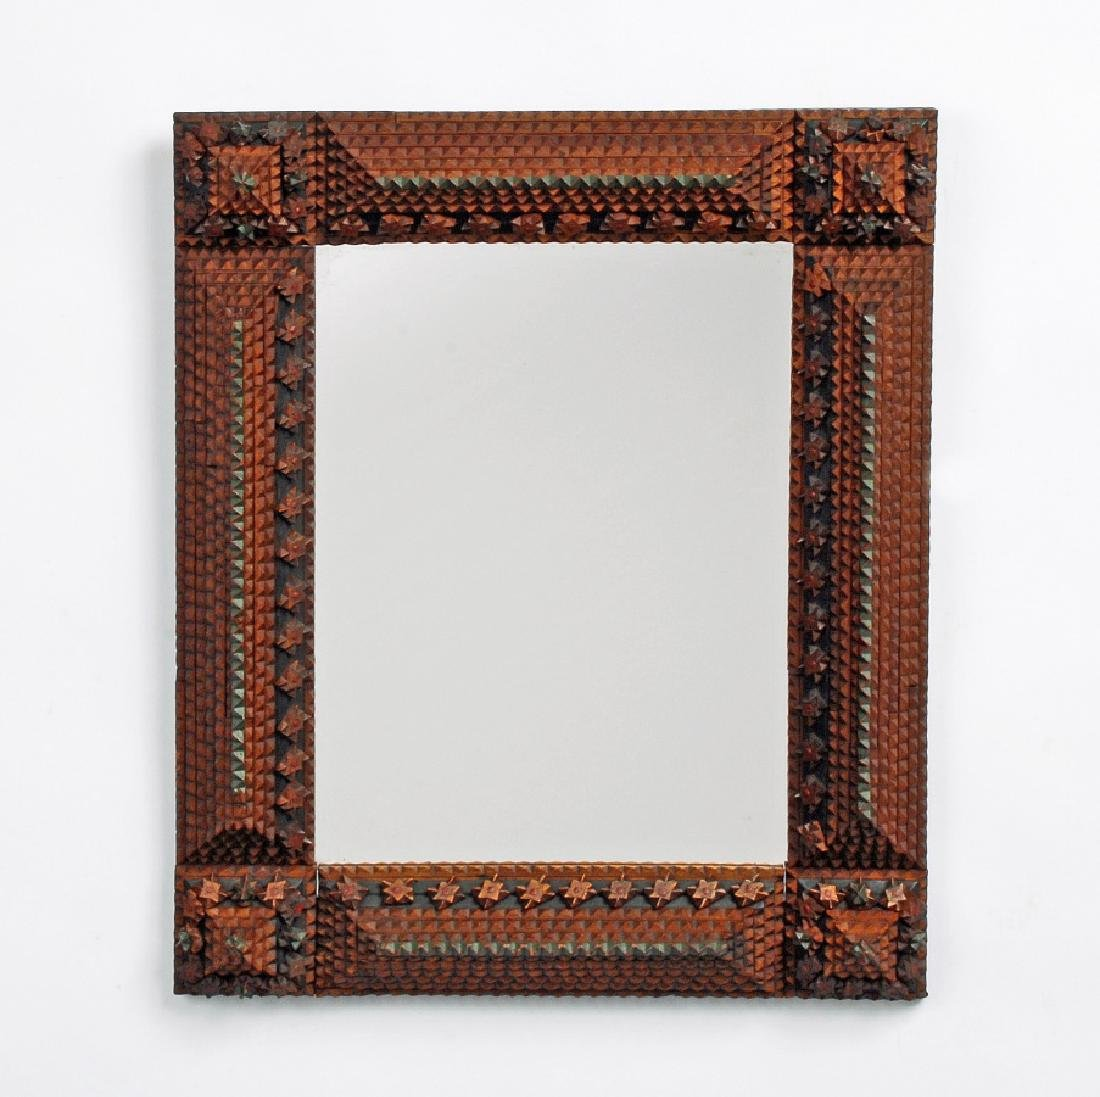 Tramp Art Mirror with Painted Highlights